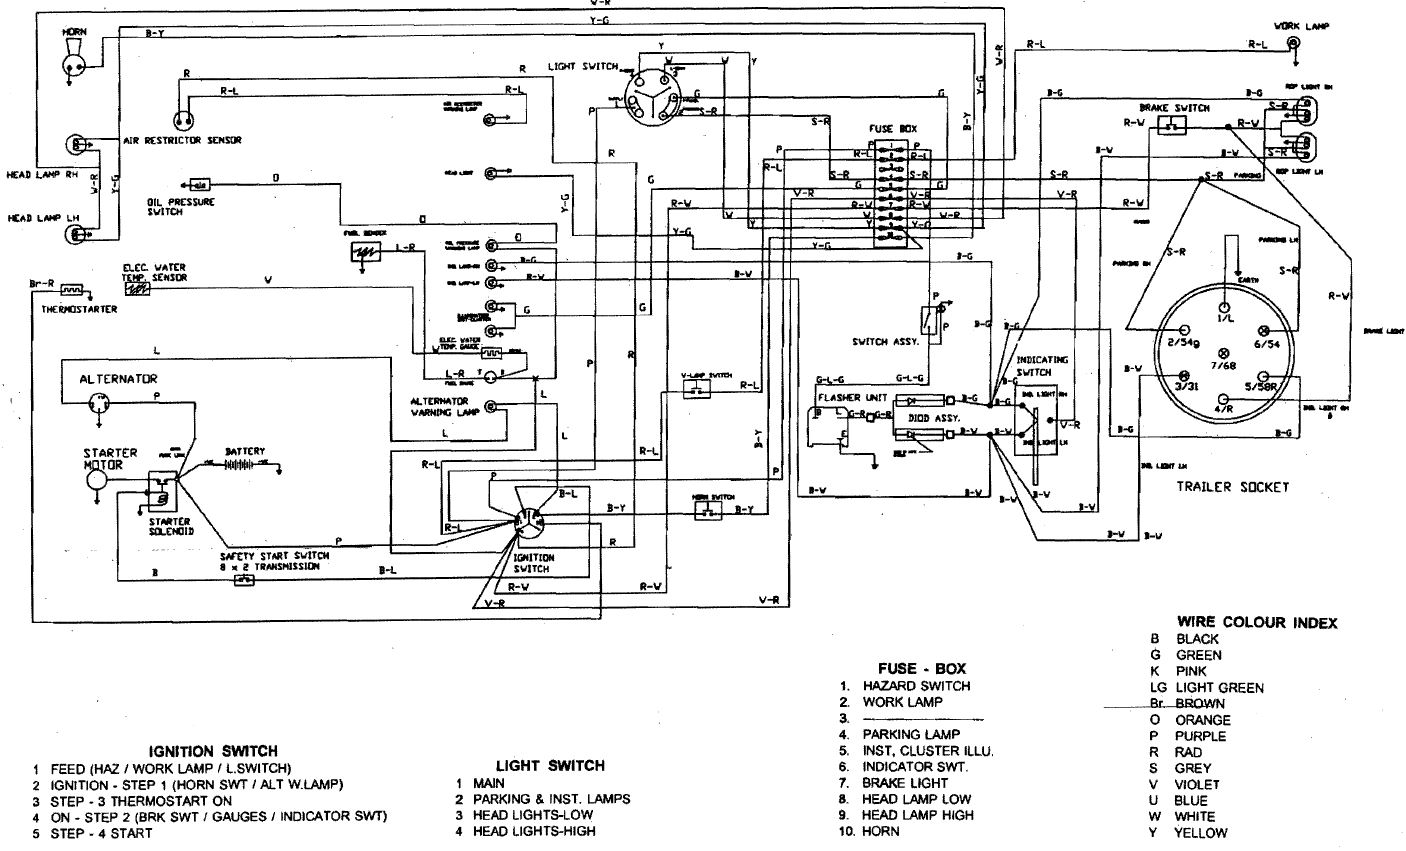 hight resolution of belarus 250as wiring diagram wiring diagram for you kubota rtv wheels ligths yanmar 1500 wiring diagram